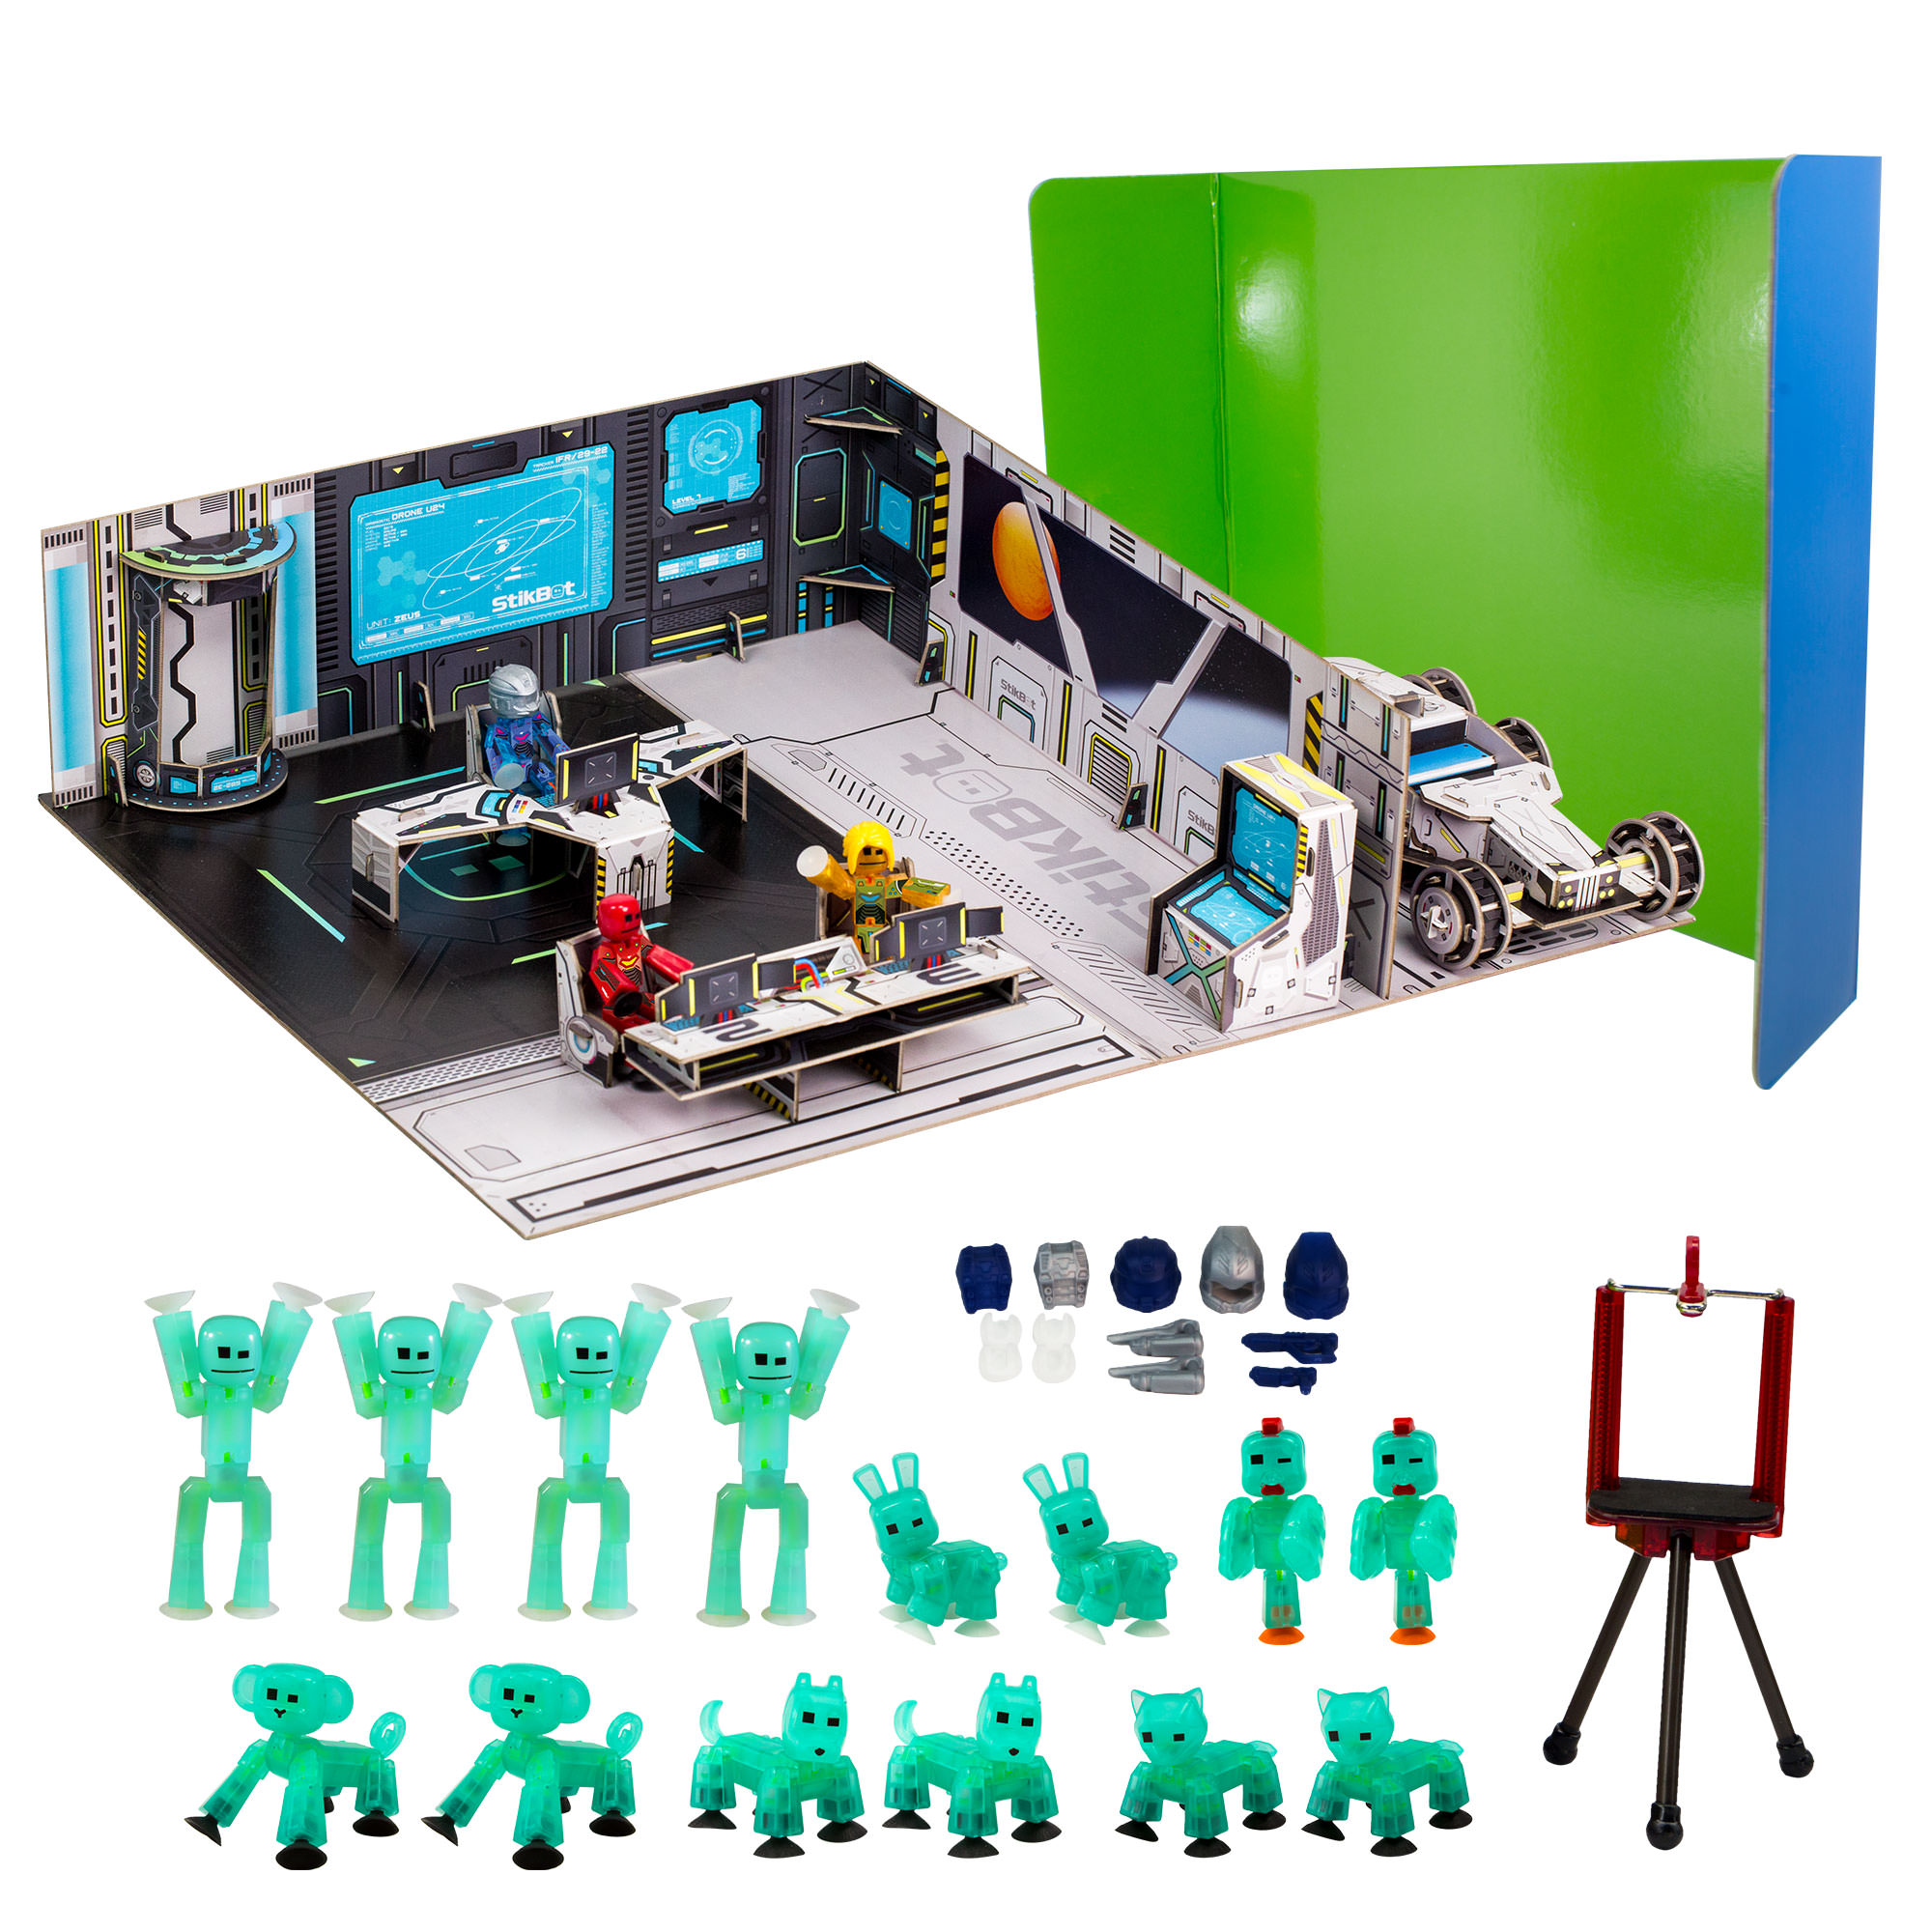 Stikbot Deluxe Movie Set Space Scene by Zing